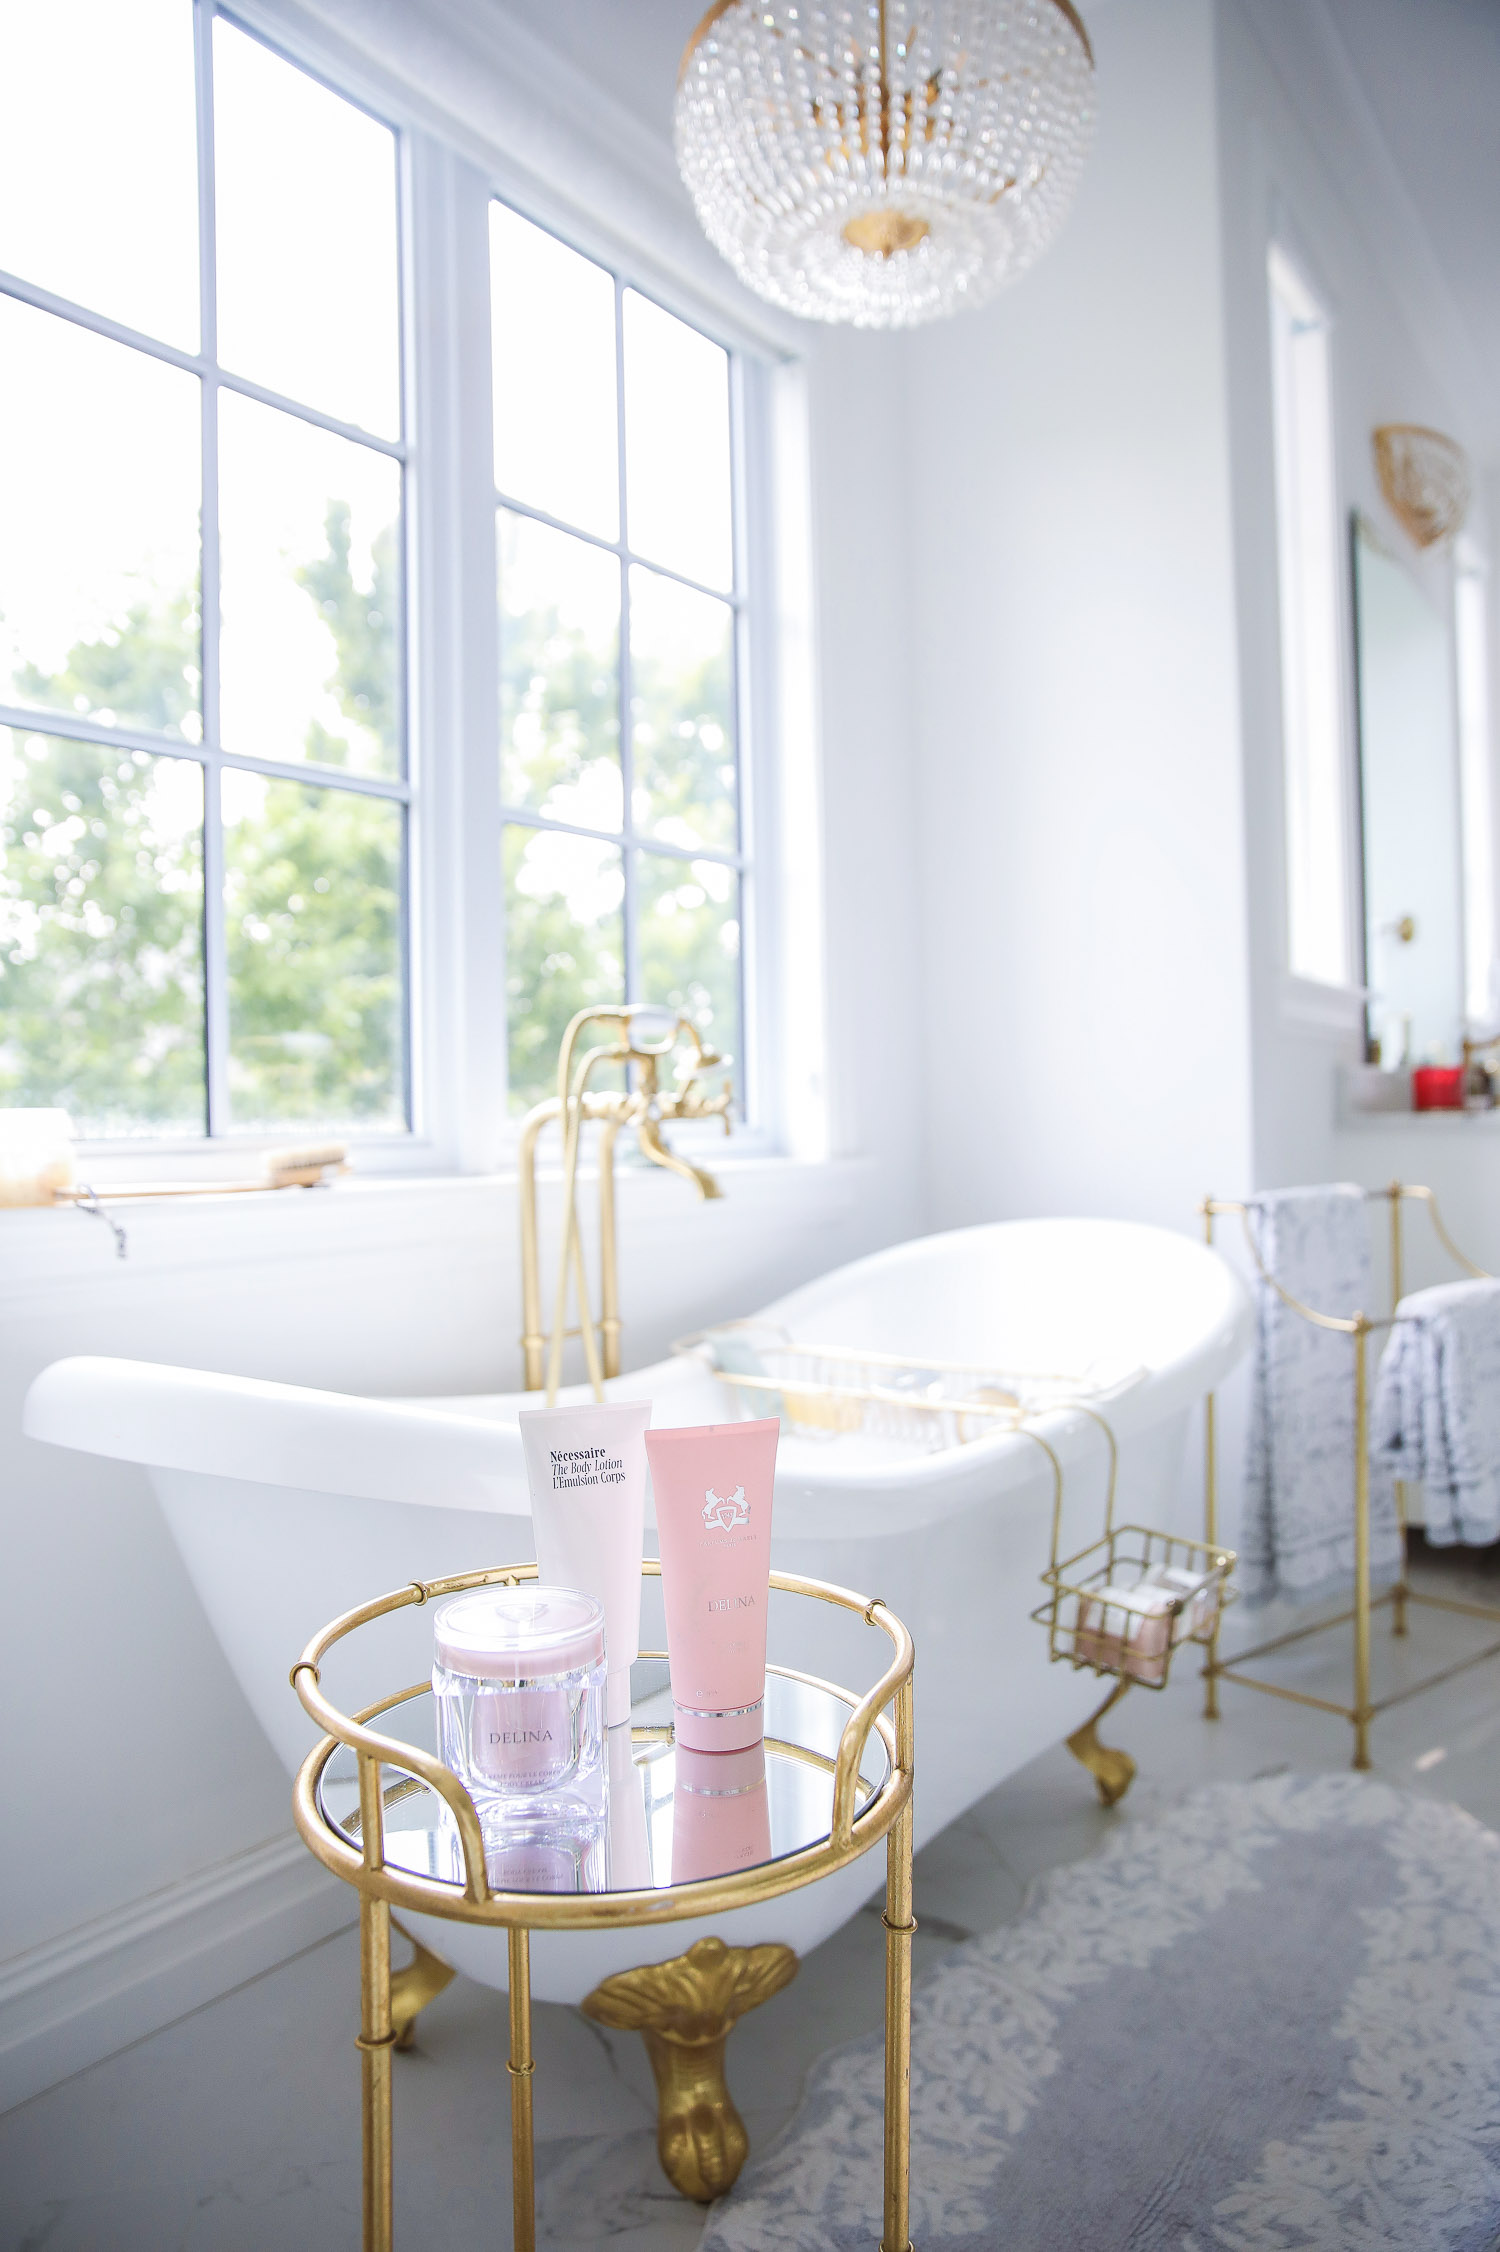 Delina Parfum de Marly set NSALE 2021, Emily gemma master bathroom, Nordstrom anniversary sale 2021 beauty must haves, anthropologie bathrom decor 2021, pinterest bathroom all white gold | Nordstrom Anniversary Sale 2021 by popular US life and style blog, The Sweetest Thing: image of a white and gold clawfoot tub next to a gold and glass table filled with skincare products.